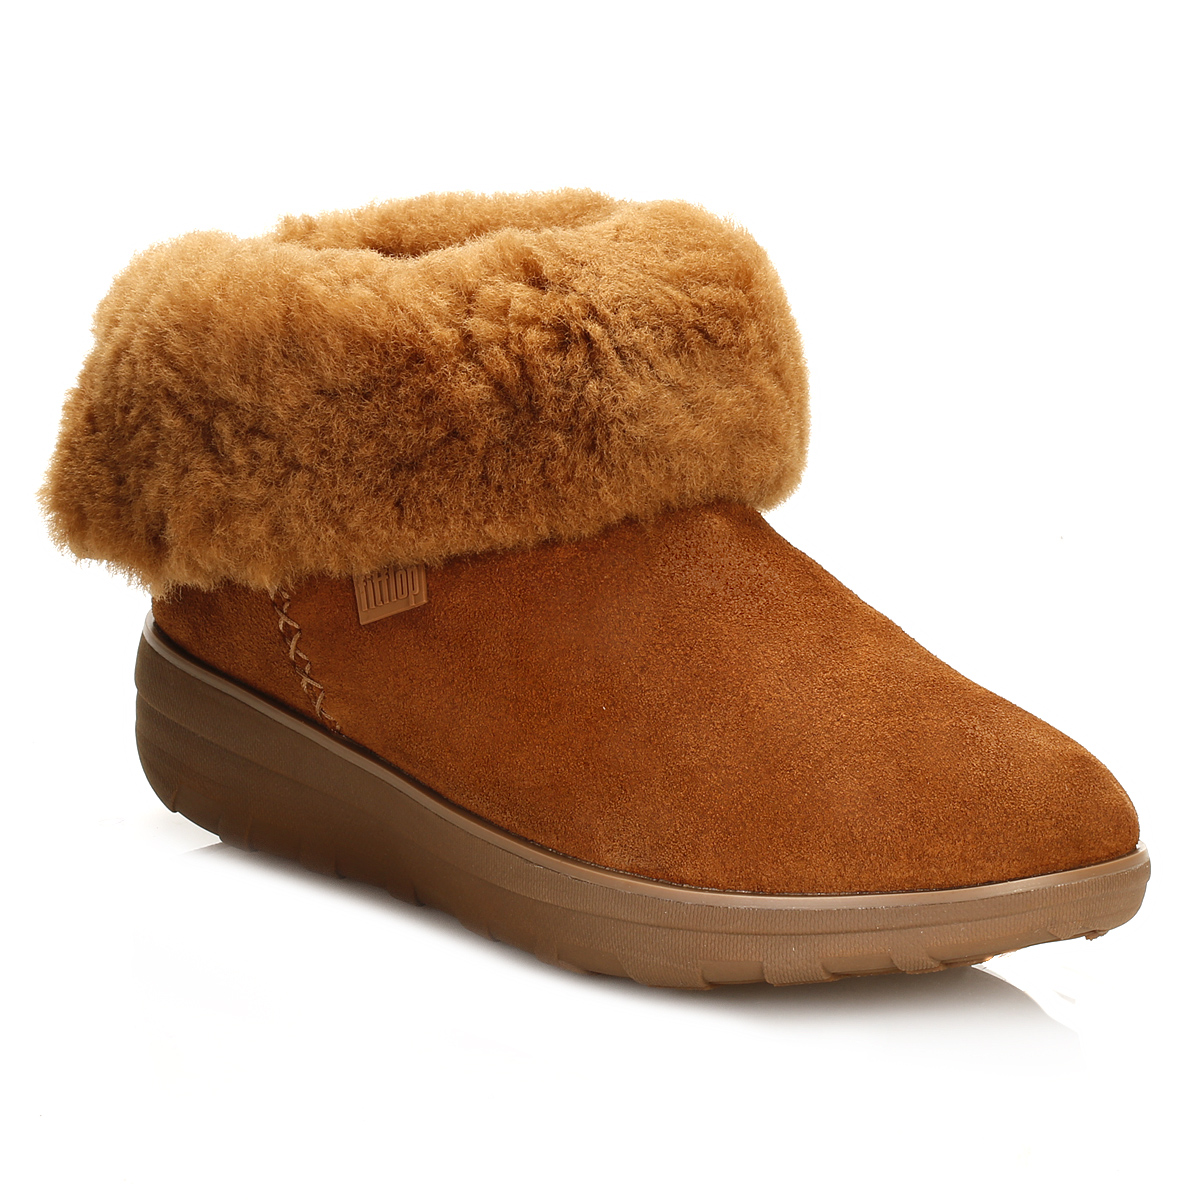 ef928934ed7e74 FitFlop Womens Tan Brown Suede Boots